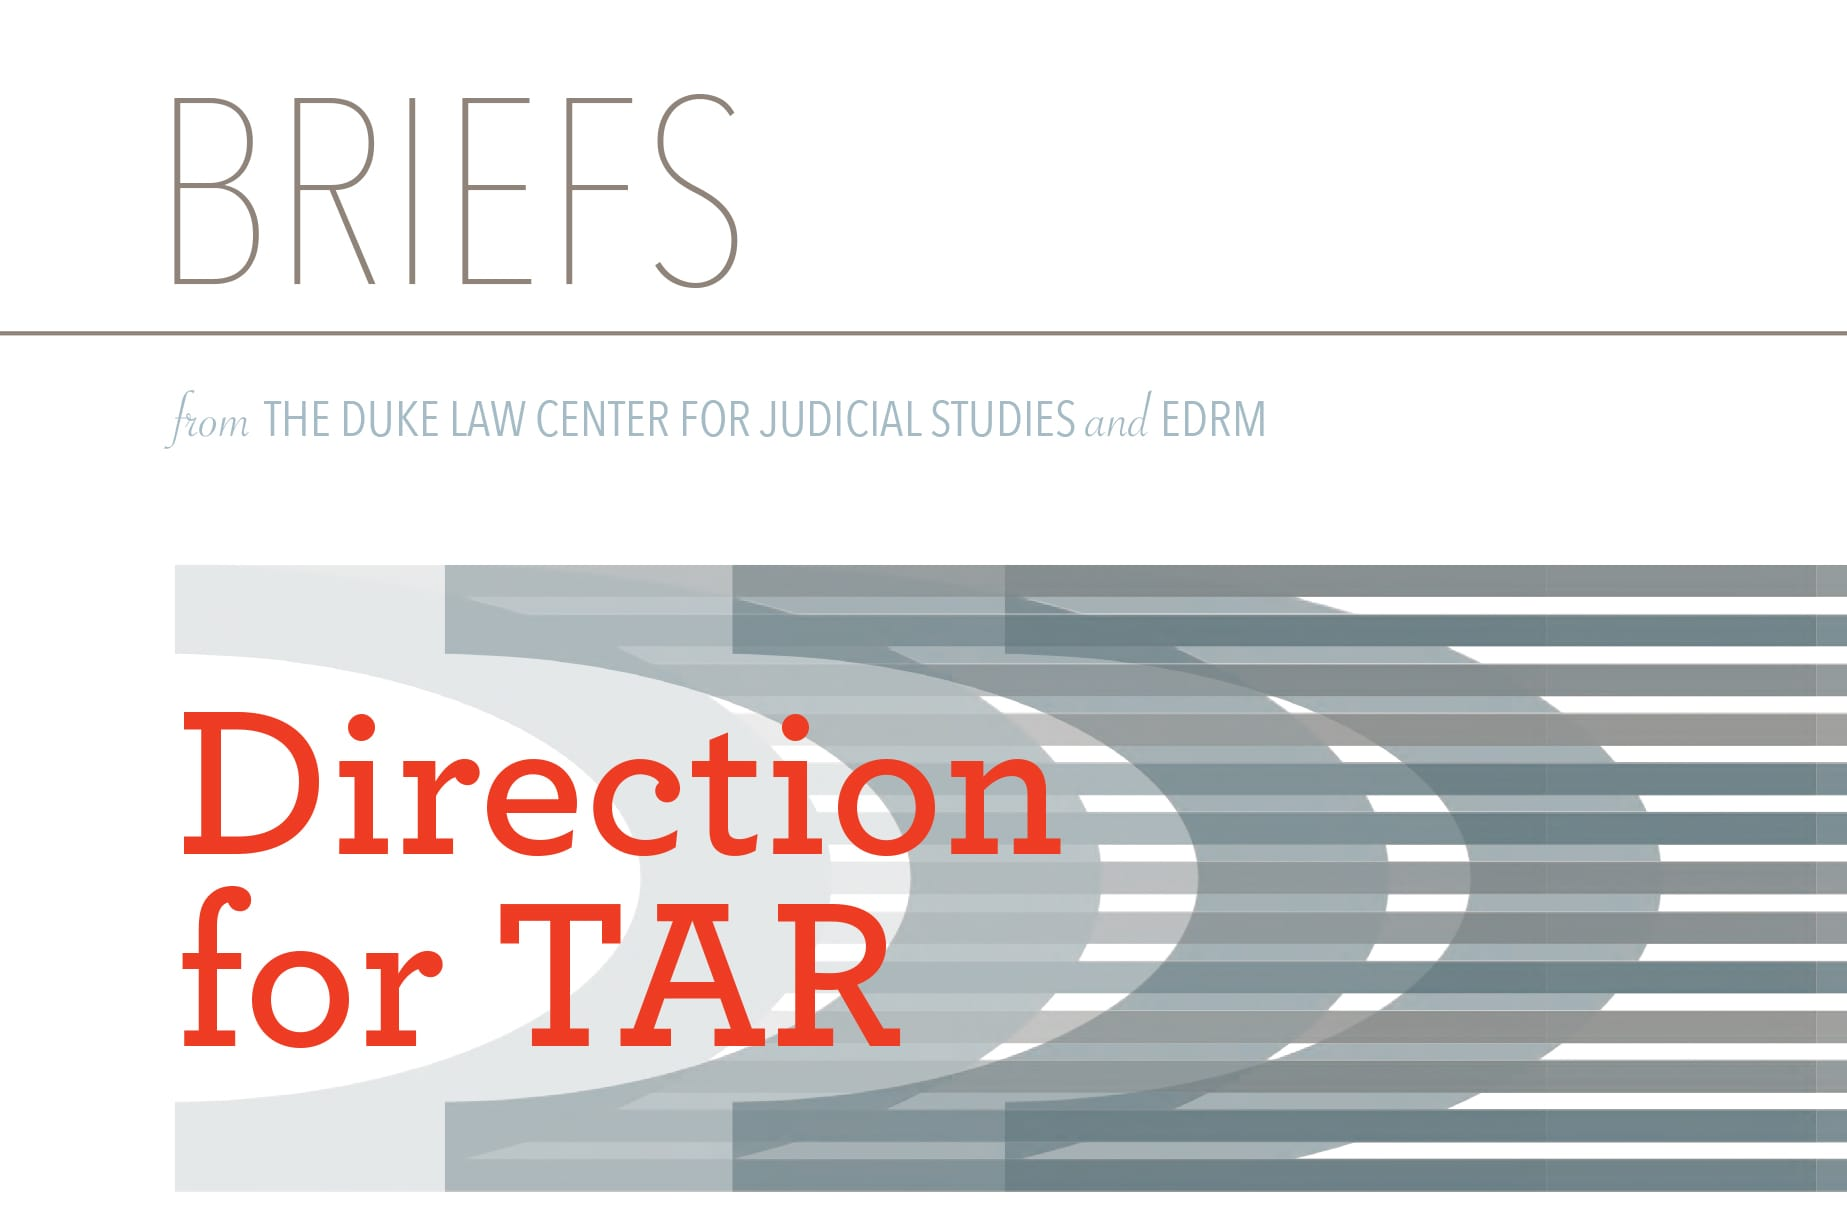 Direction for TAR